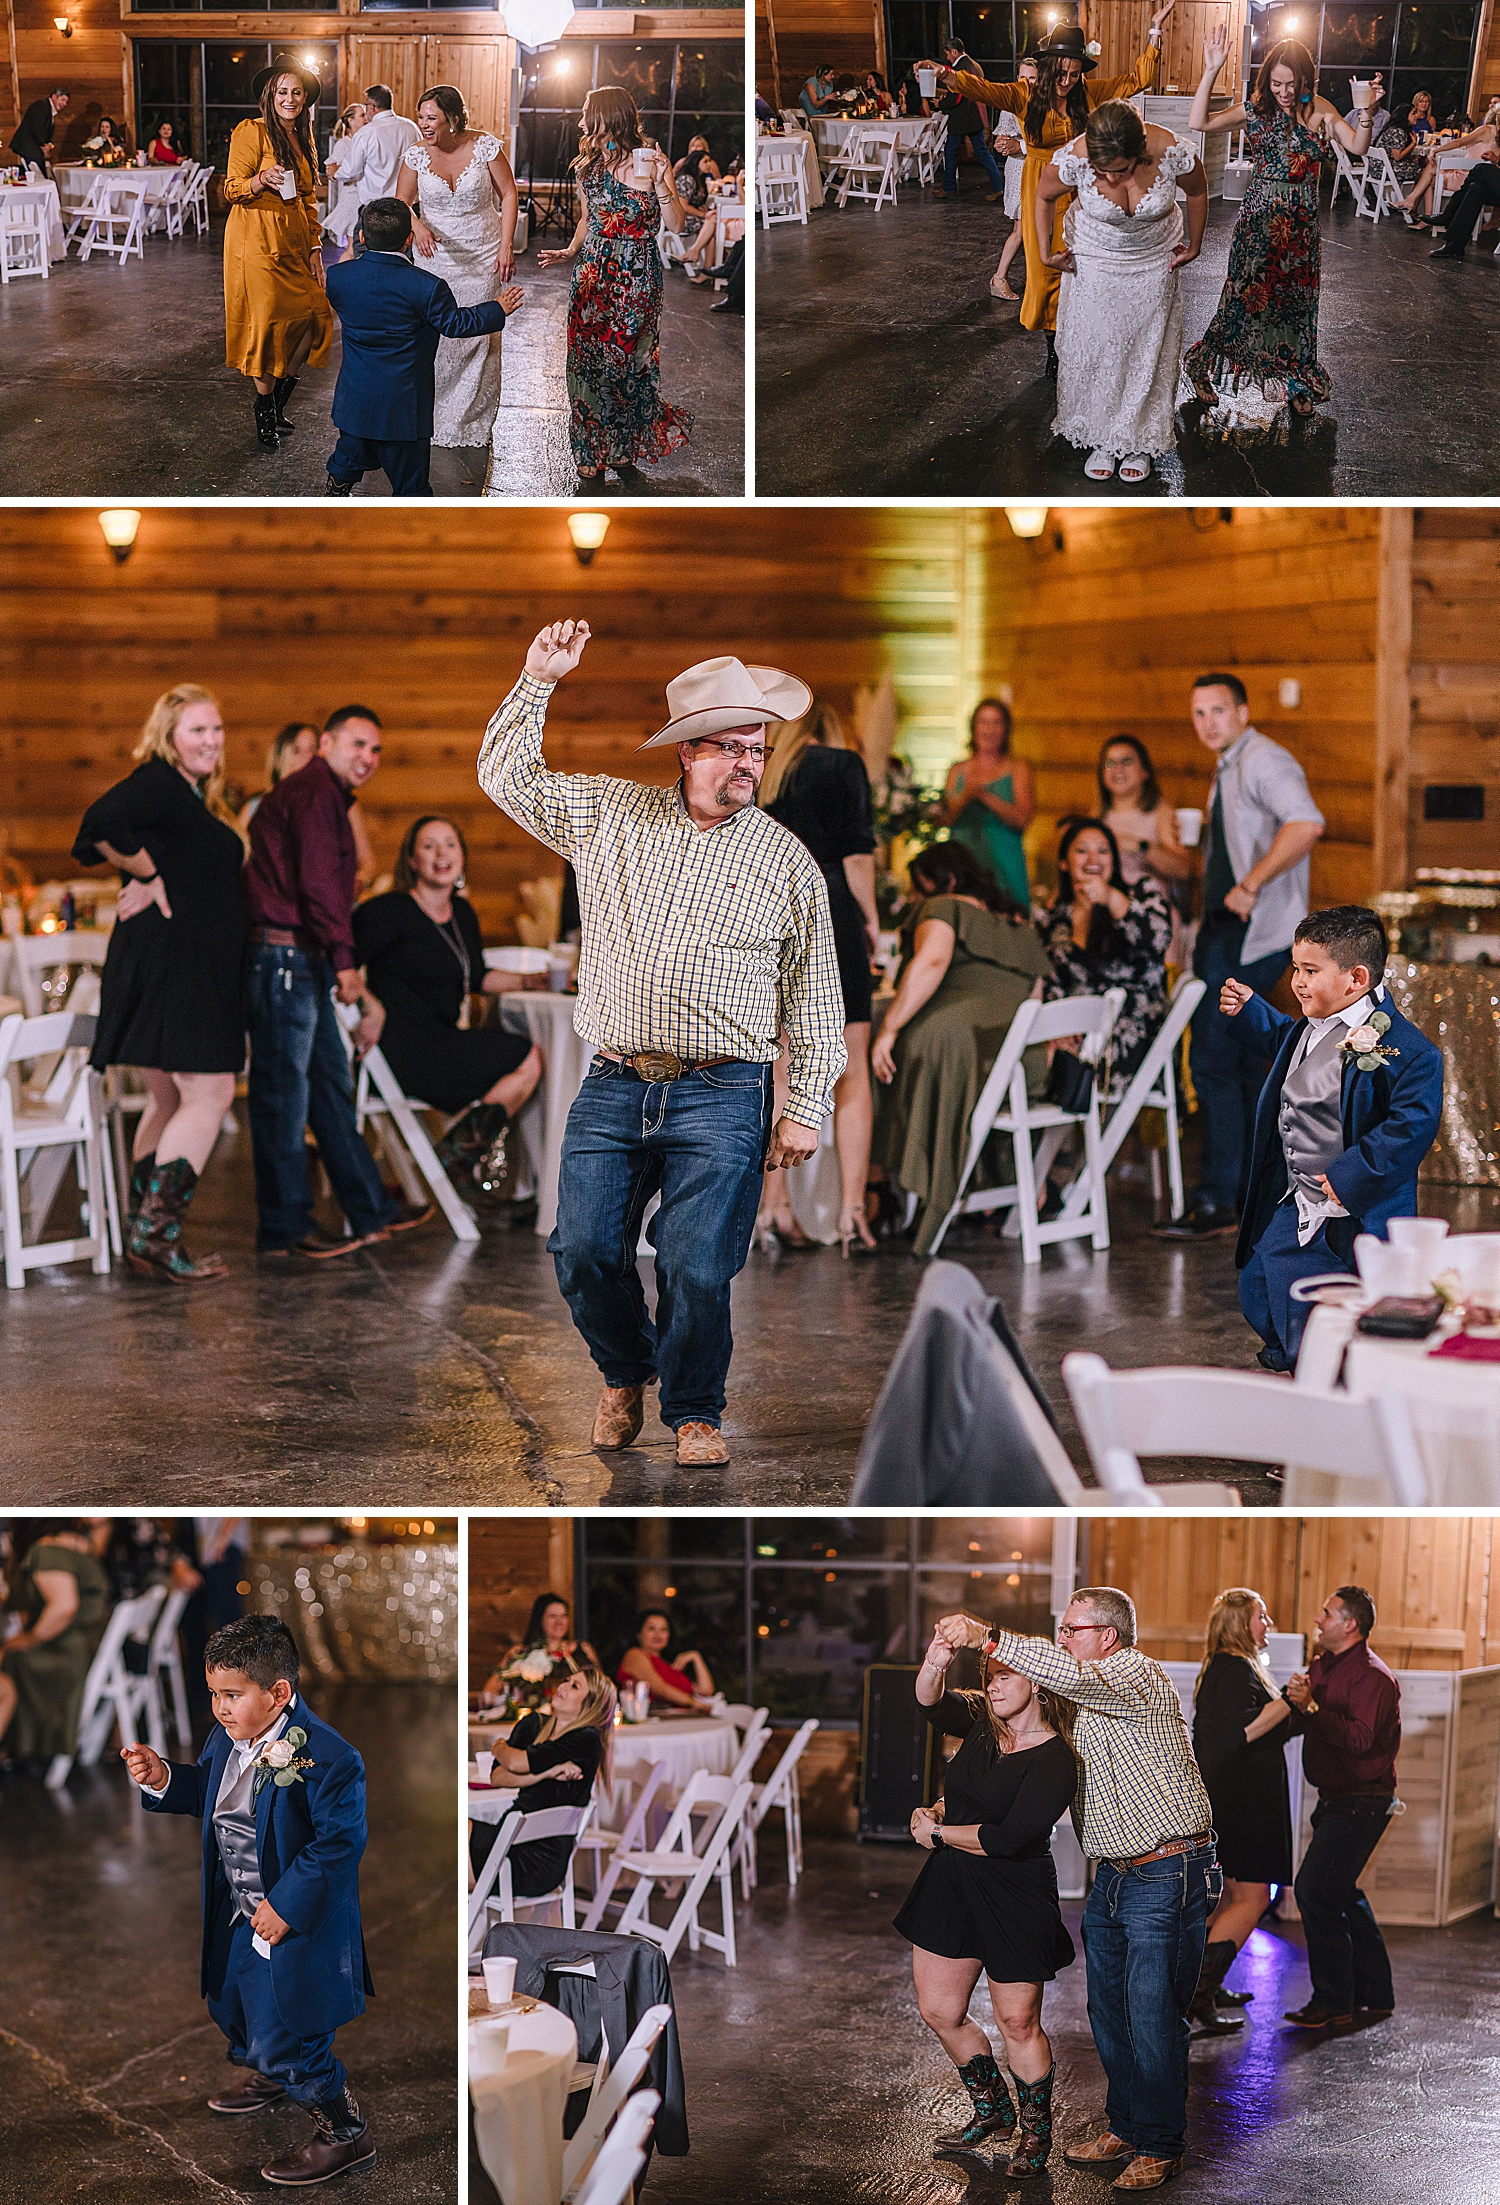 Geronimo-Oaks-Wedding-Venue-Seguin-Texas-Elegant-Navy-Burgundy-Wedding-Carly-Barton-Photography_0083.jpg